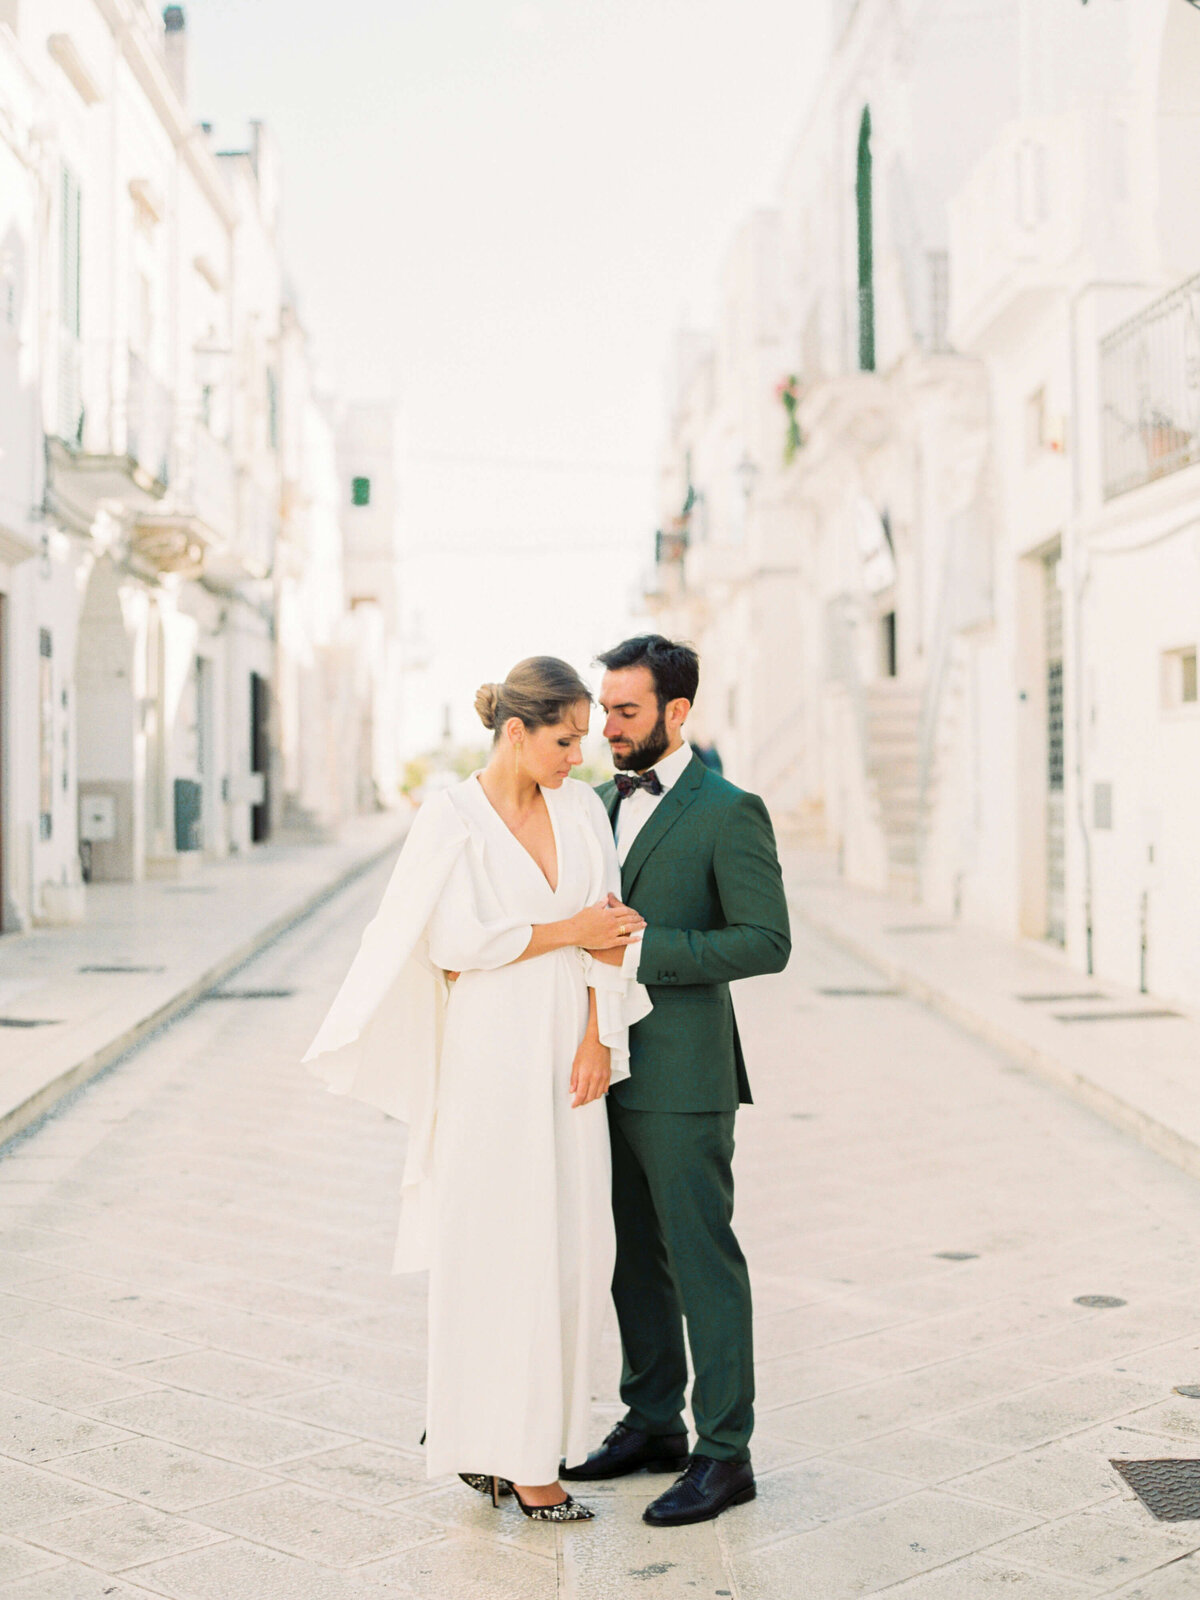 Styled Shoot - Honeymoon - Cisternino - Puglia - Italy 0106